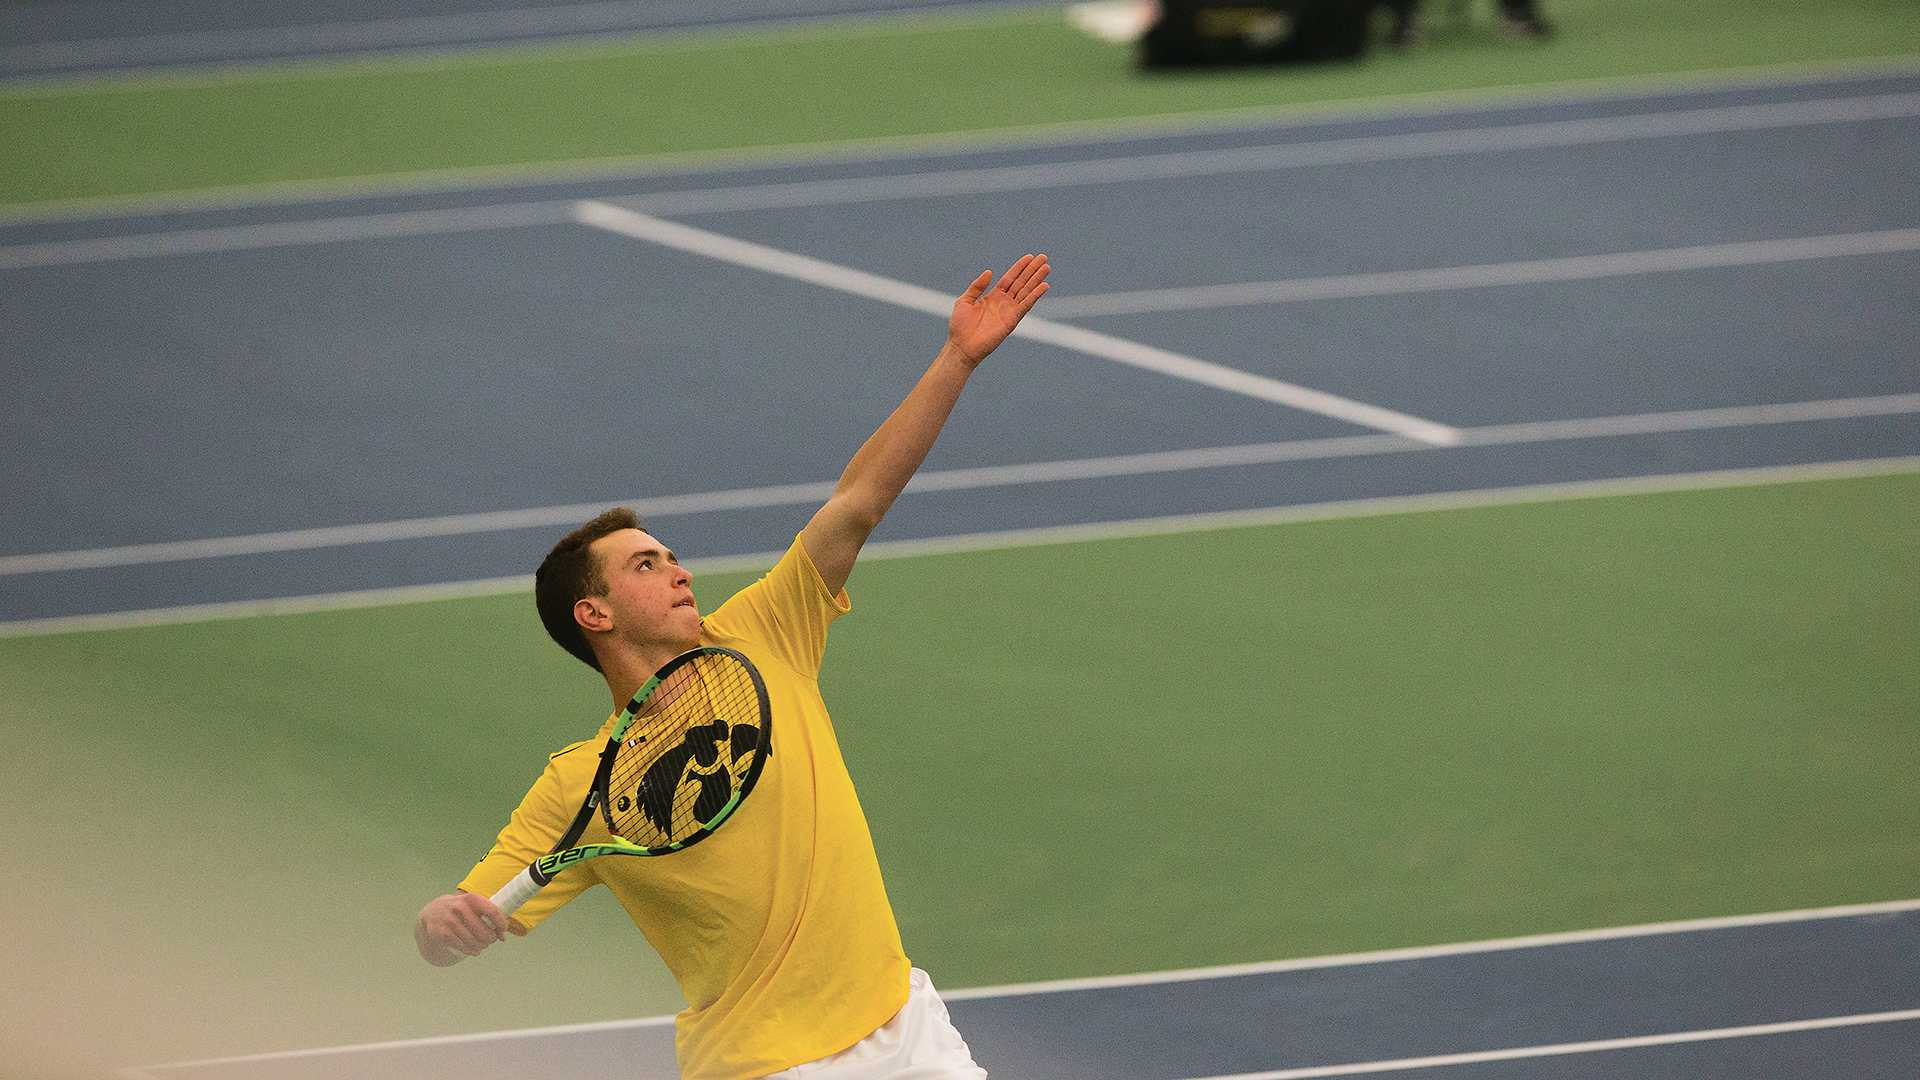 Iowa's Piotr Smietana serves a ball during the Iowa/Creighton tennis match at the Hawkeye Tennis and Recreation Complex on Friday, Feb. 16, 2018. The Hawkeyes defeated the Bluejays, 7-0. (Lily Smith/The Daily Iowan)